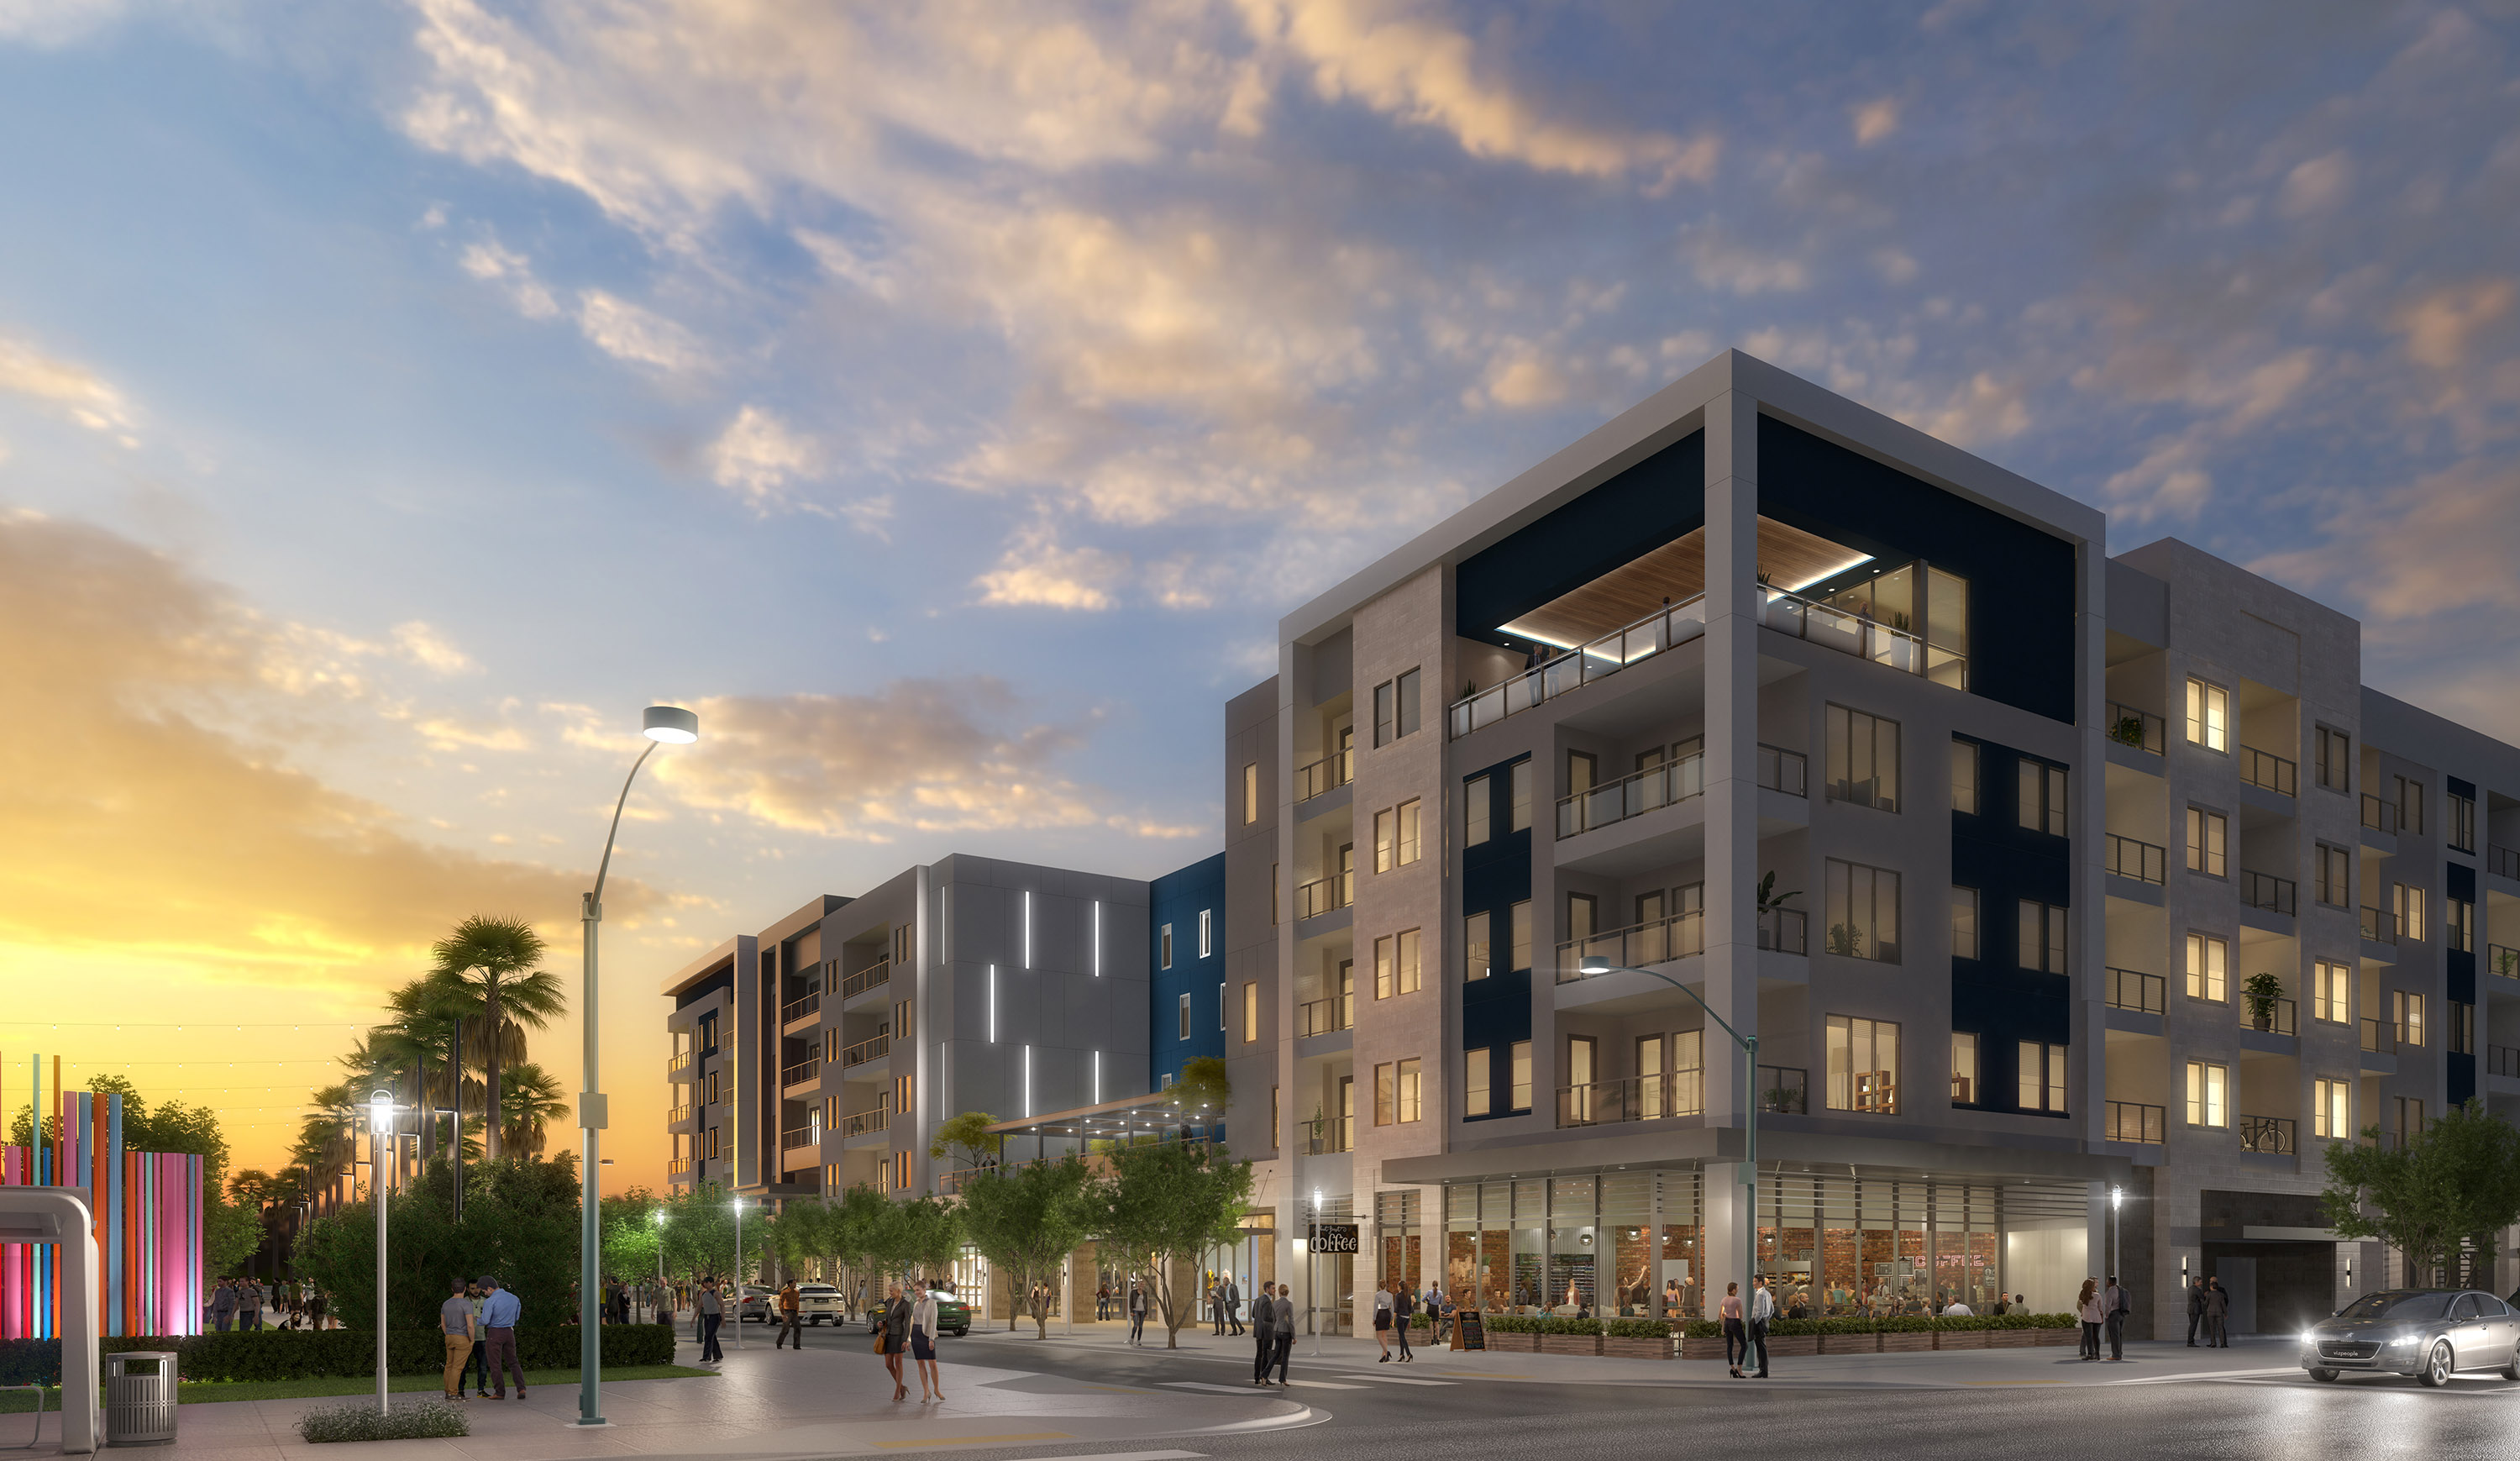 Southern Land Co.'s Auric Symphony Park apartment complex is being built in a Las Vegas opportunity zone. (Southern Land Co.)